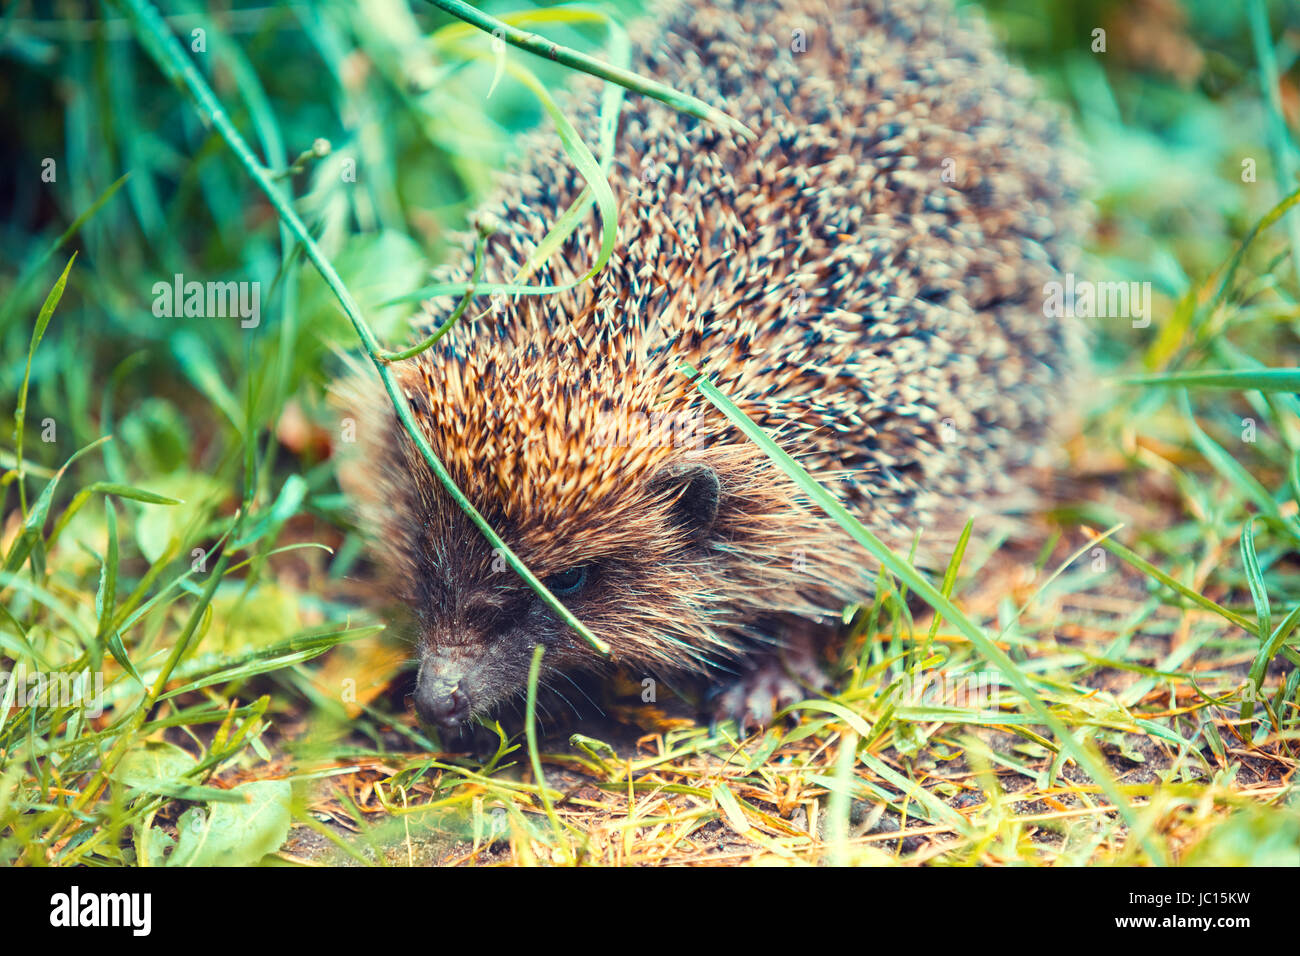 Hedgehog walking in the grass Stock Photo